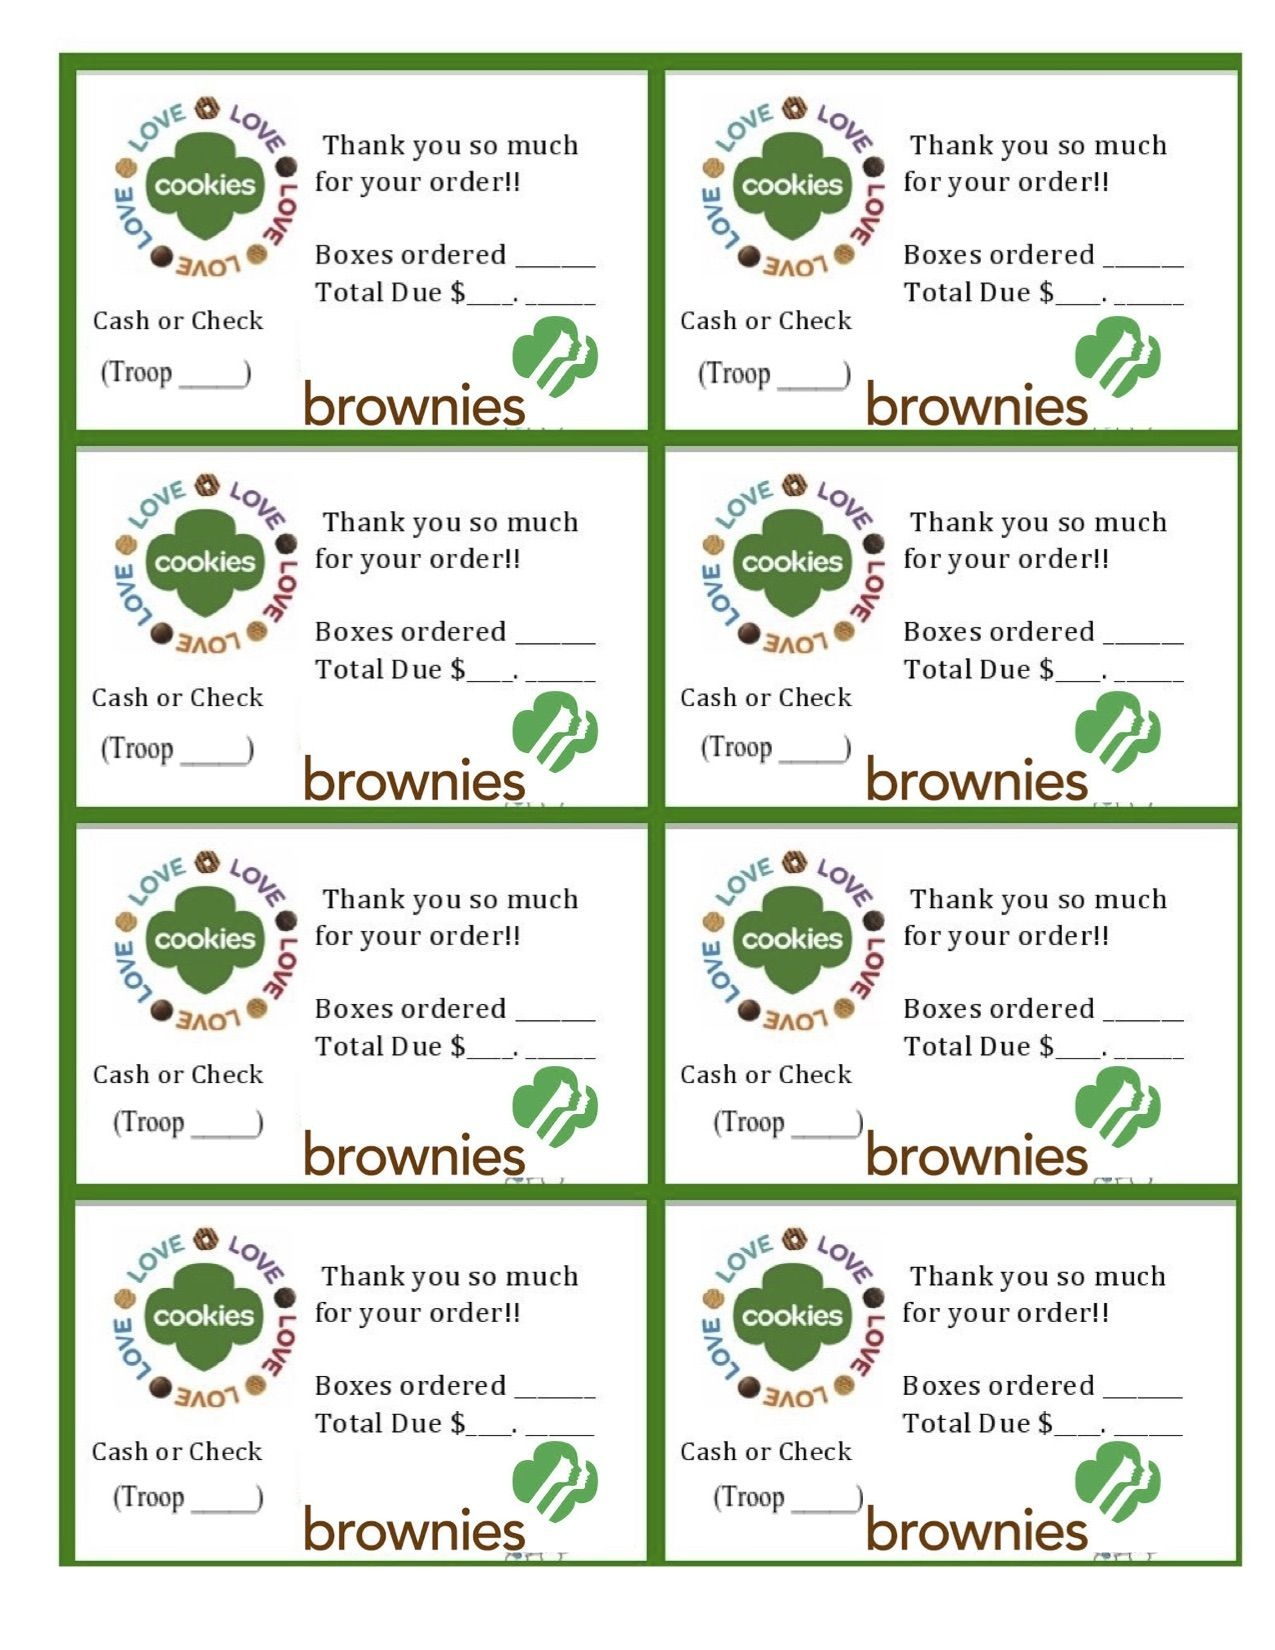 Printable Brownie Girl Scouts Cookie Sales Invoice And Thank You - Free Printable Eagle Scout Thank You Cards